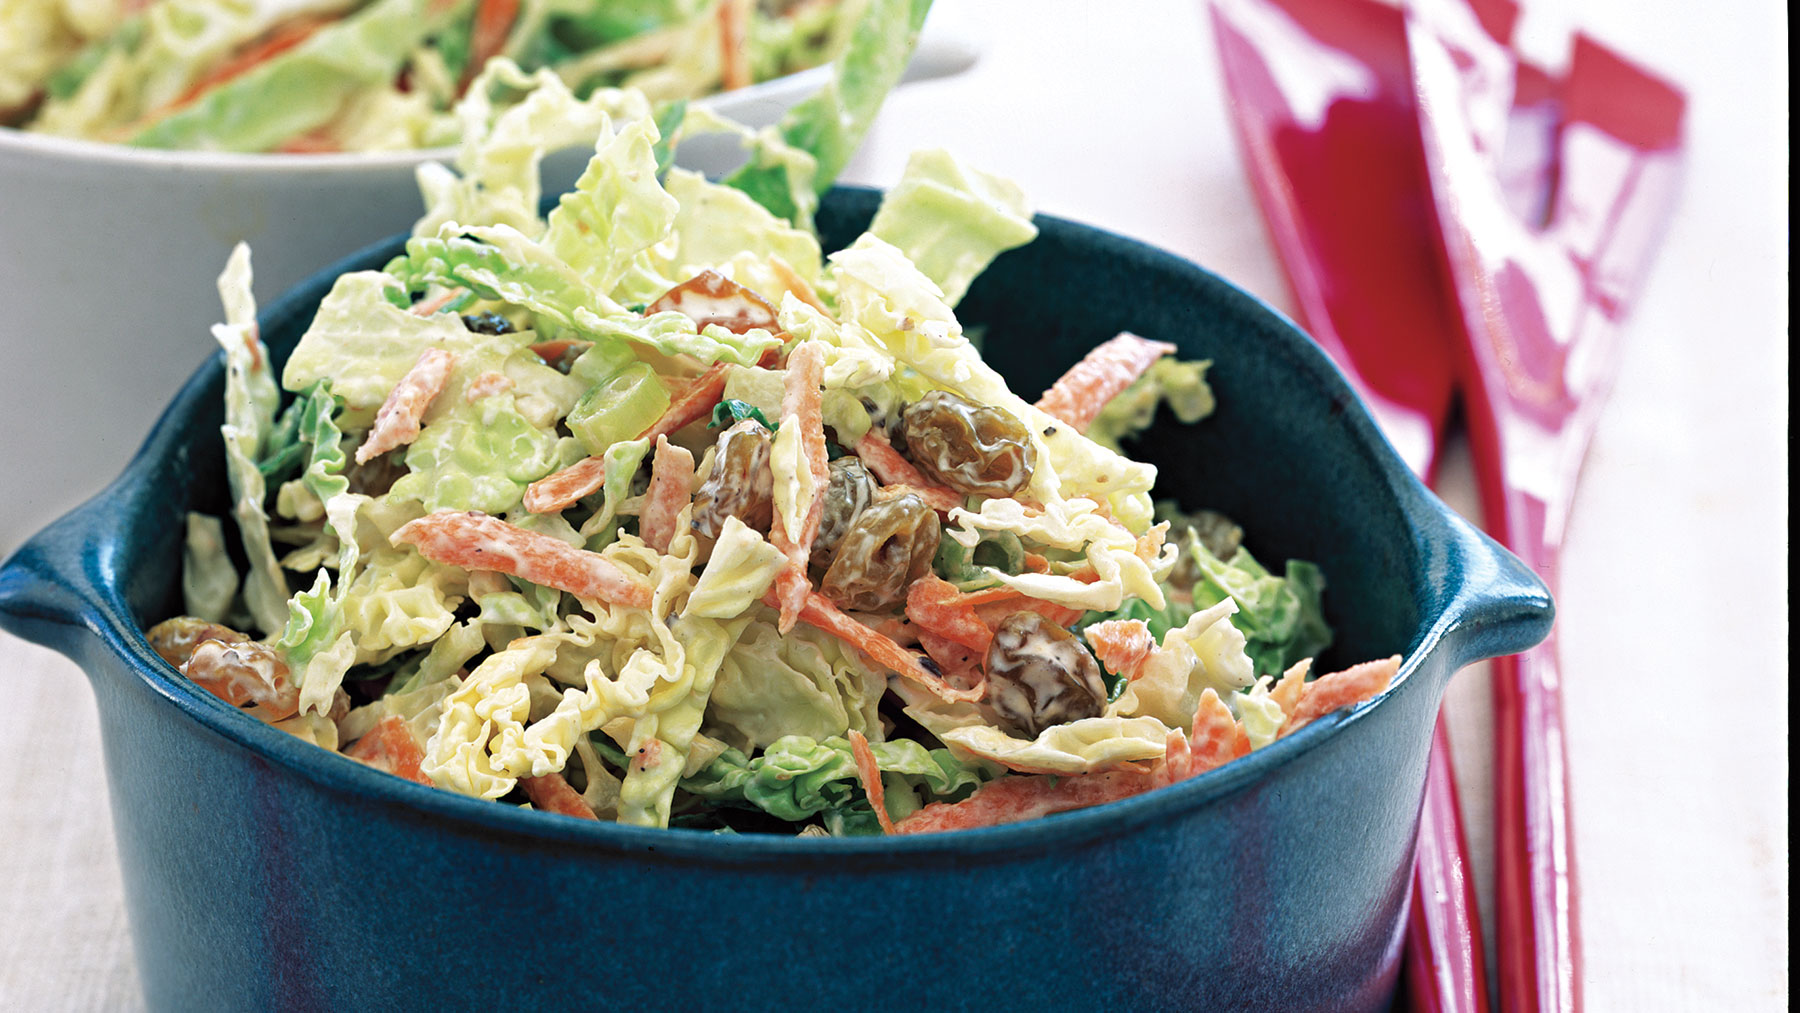 Coleslaw With Caraway and Raisins